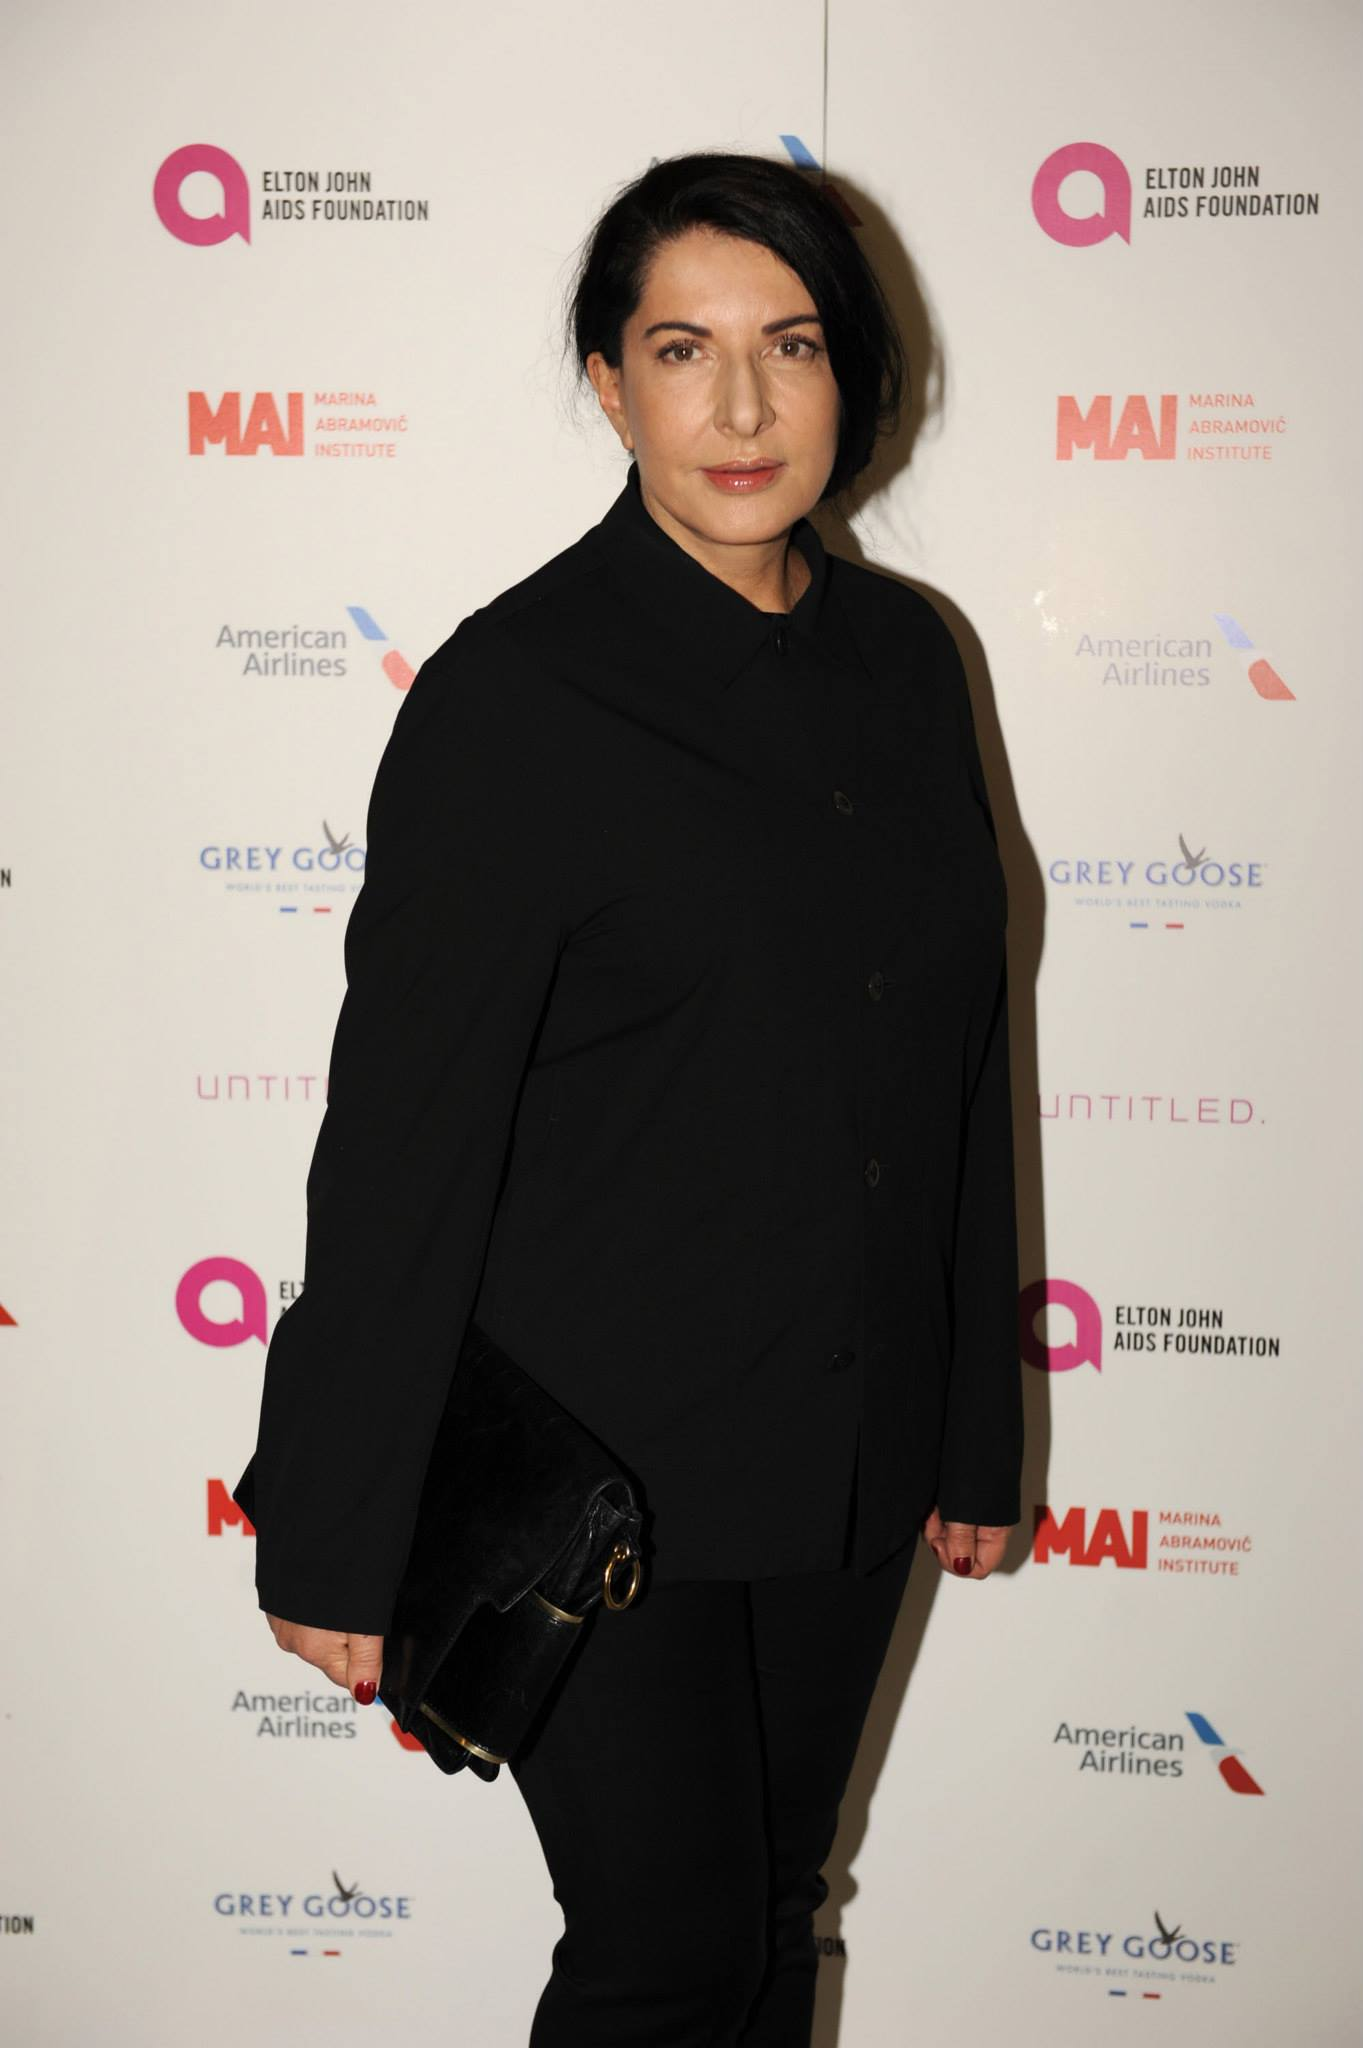 Marina Abramovic at the VIP Opening Party for UNTITLED. art fair 2014, co-hosted by the Elton John AIDS Foundation